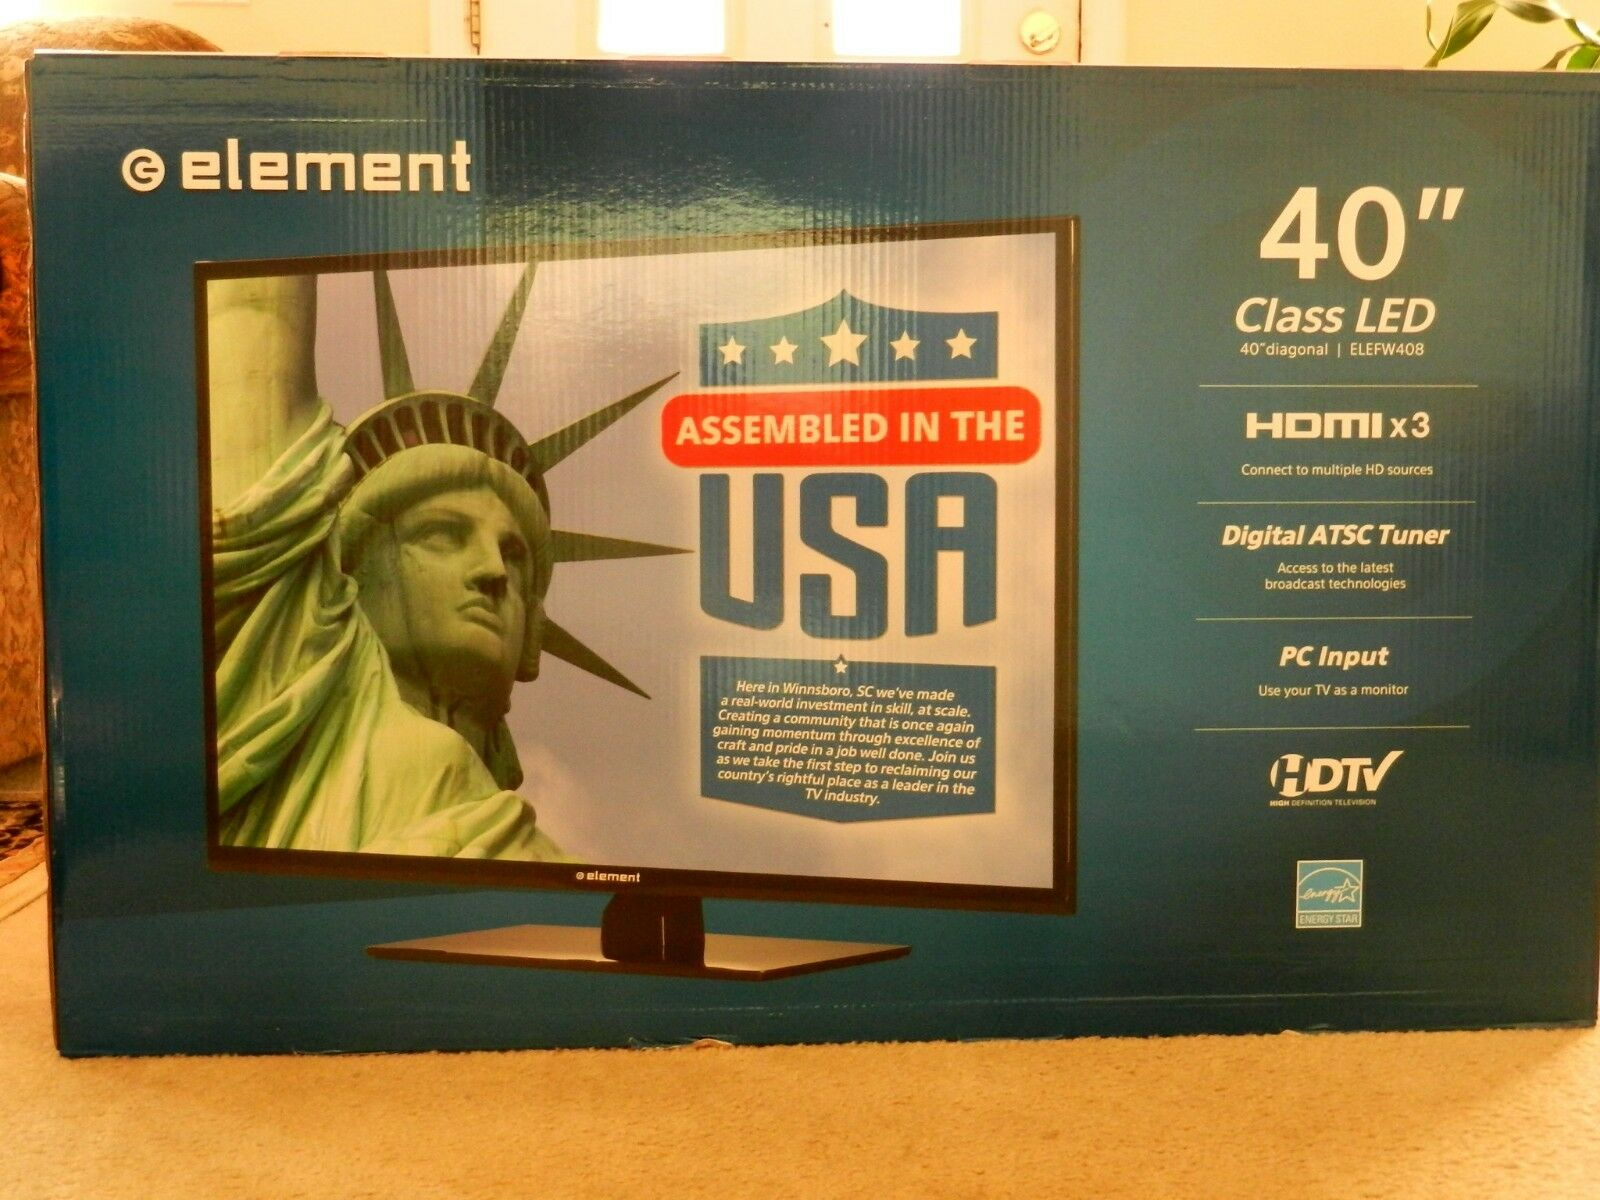 Element ELEFW408 40 1080p 60Hz Direct-Lit LED HDTV NEW-NOT USED OR OPENED. Available Now for 343.00